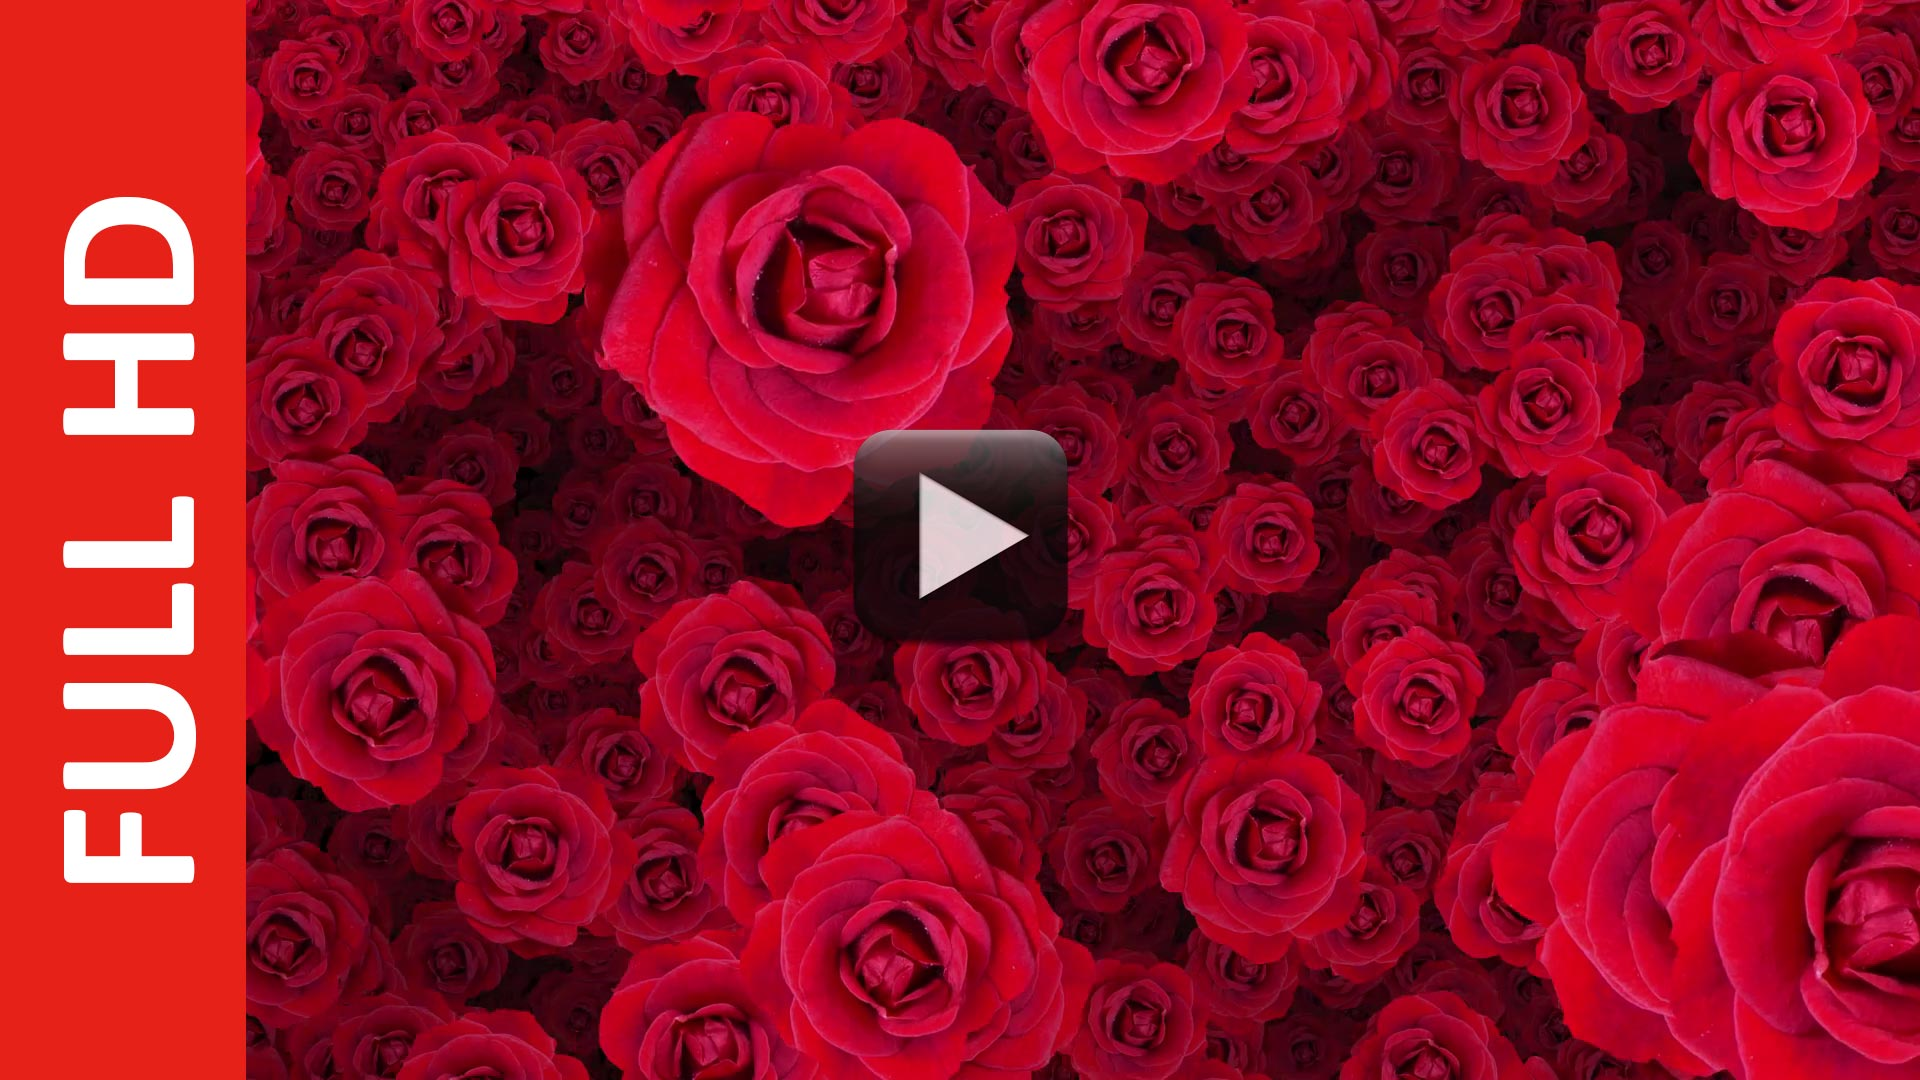 Royalty free background flower animation after effects all design royalty free background flower animation after effects all design creative izmirmasajfo Image collections